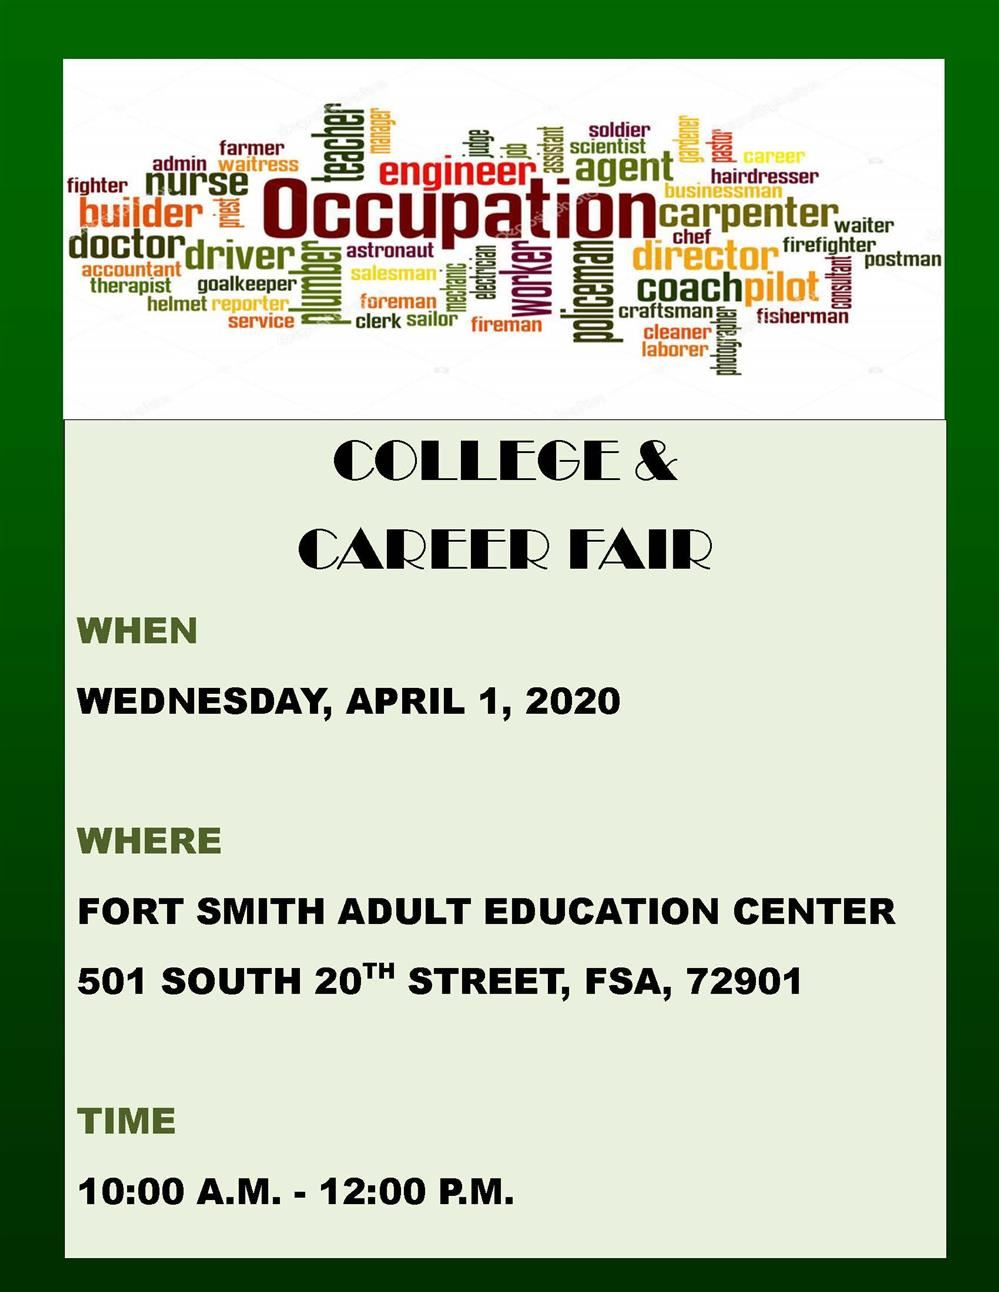 College & Career Fair Coming Soon!!